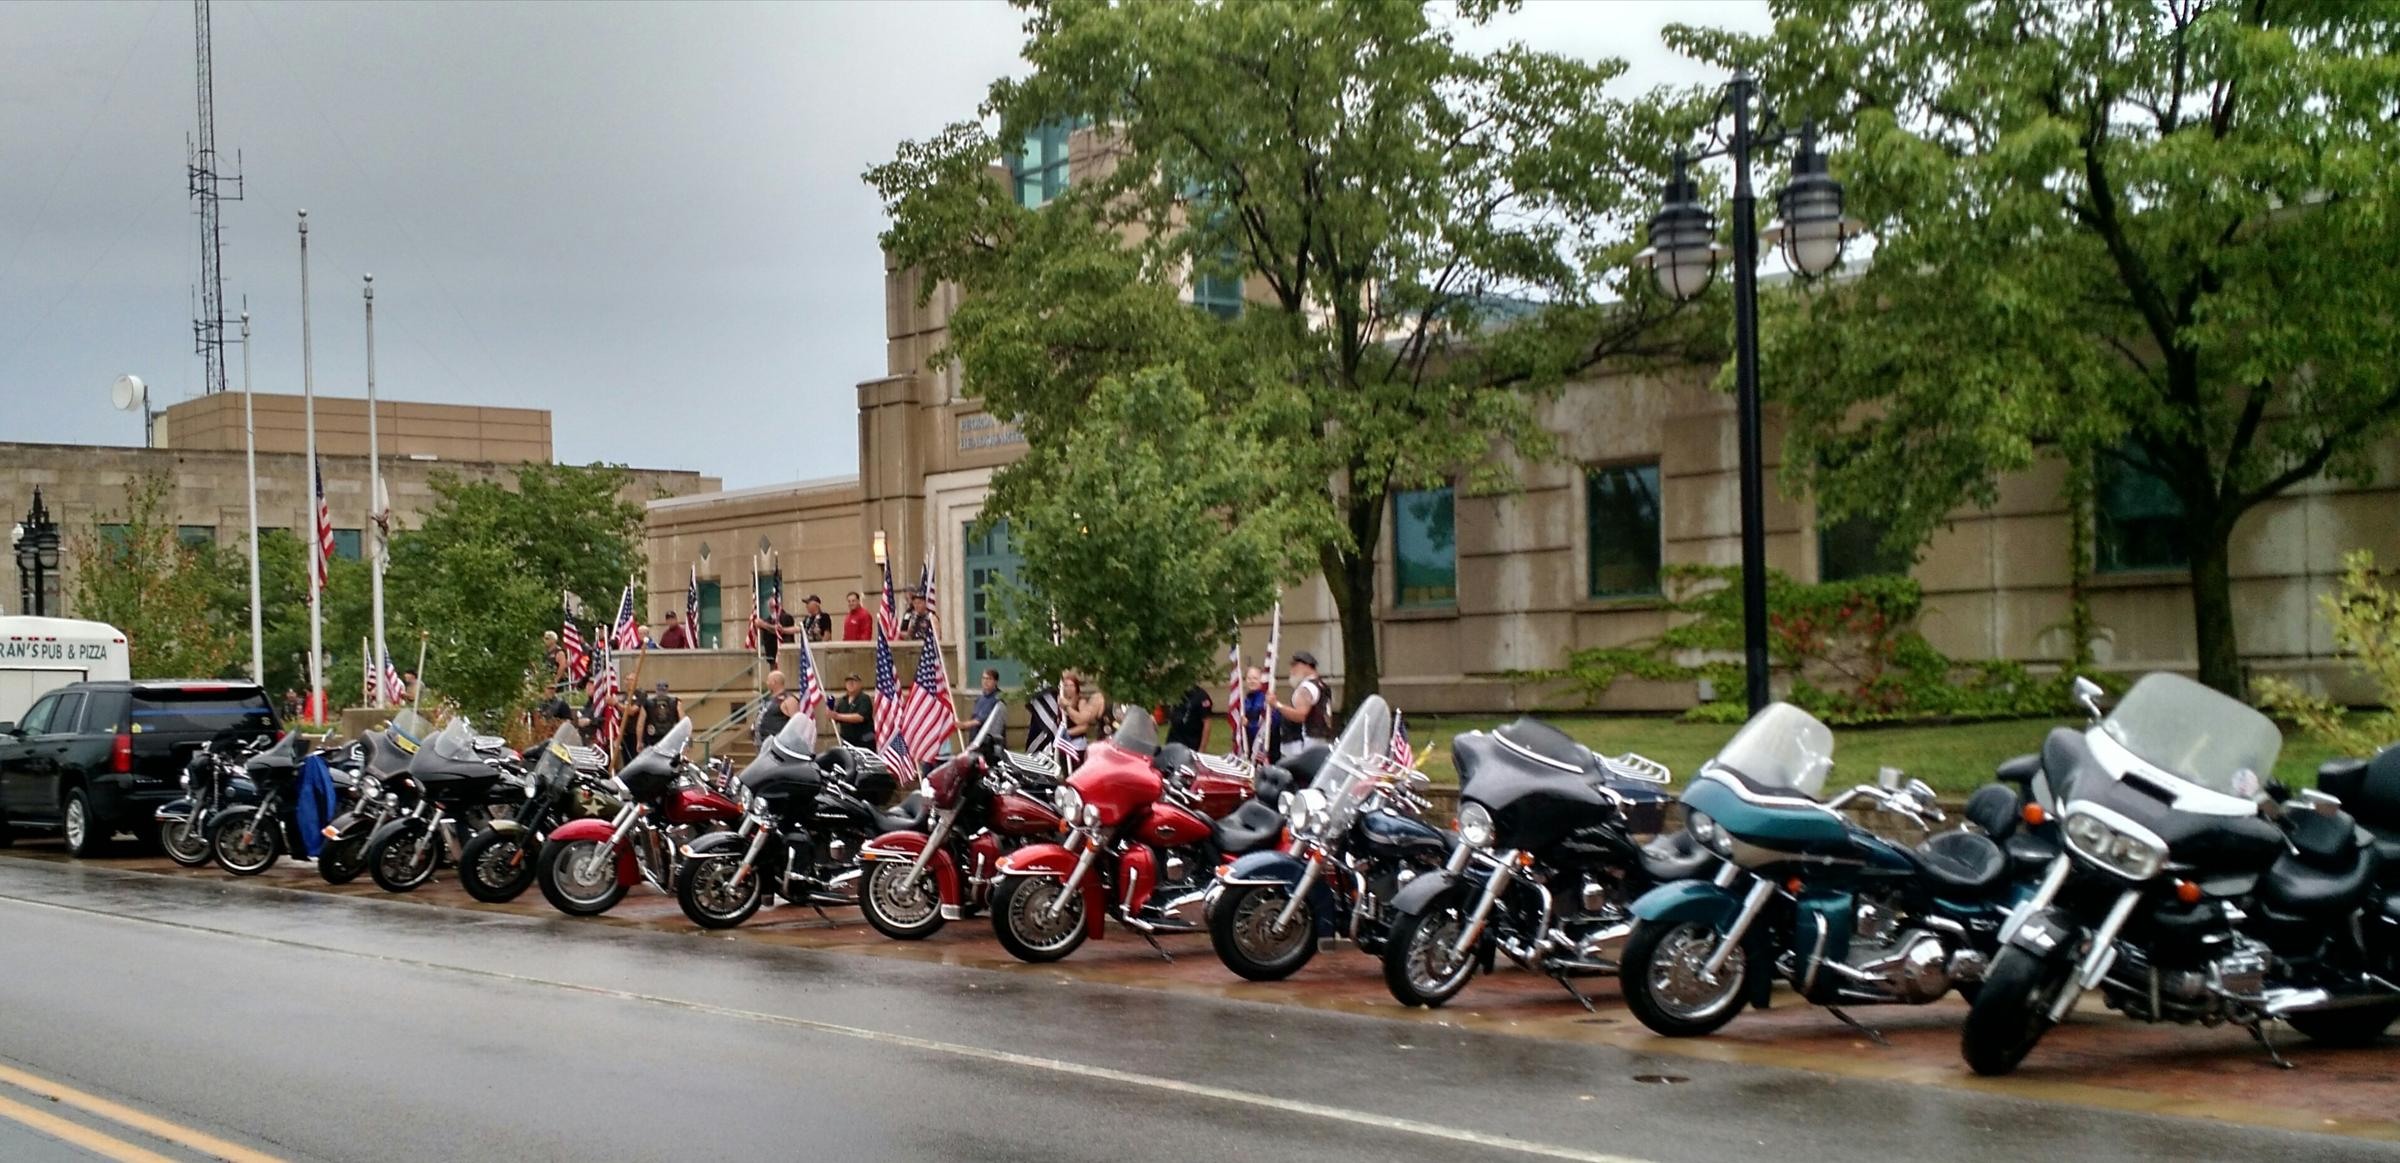 Through Rain and Storm Patriot Guard Stands Alongside Police